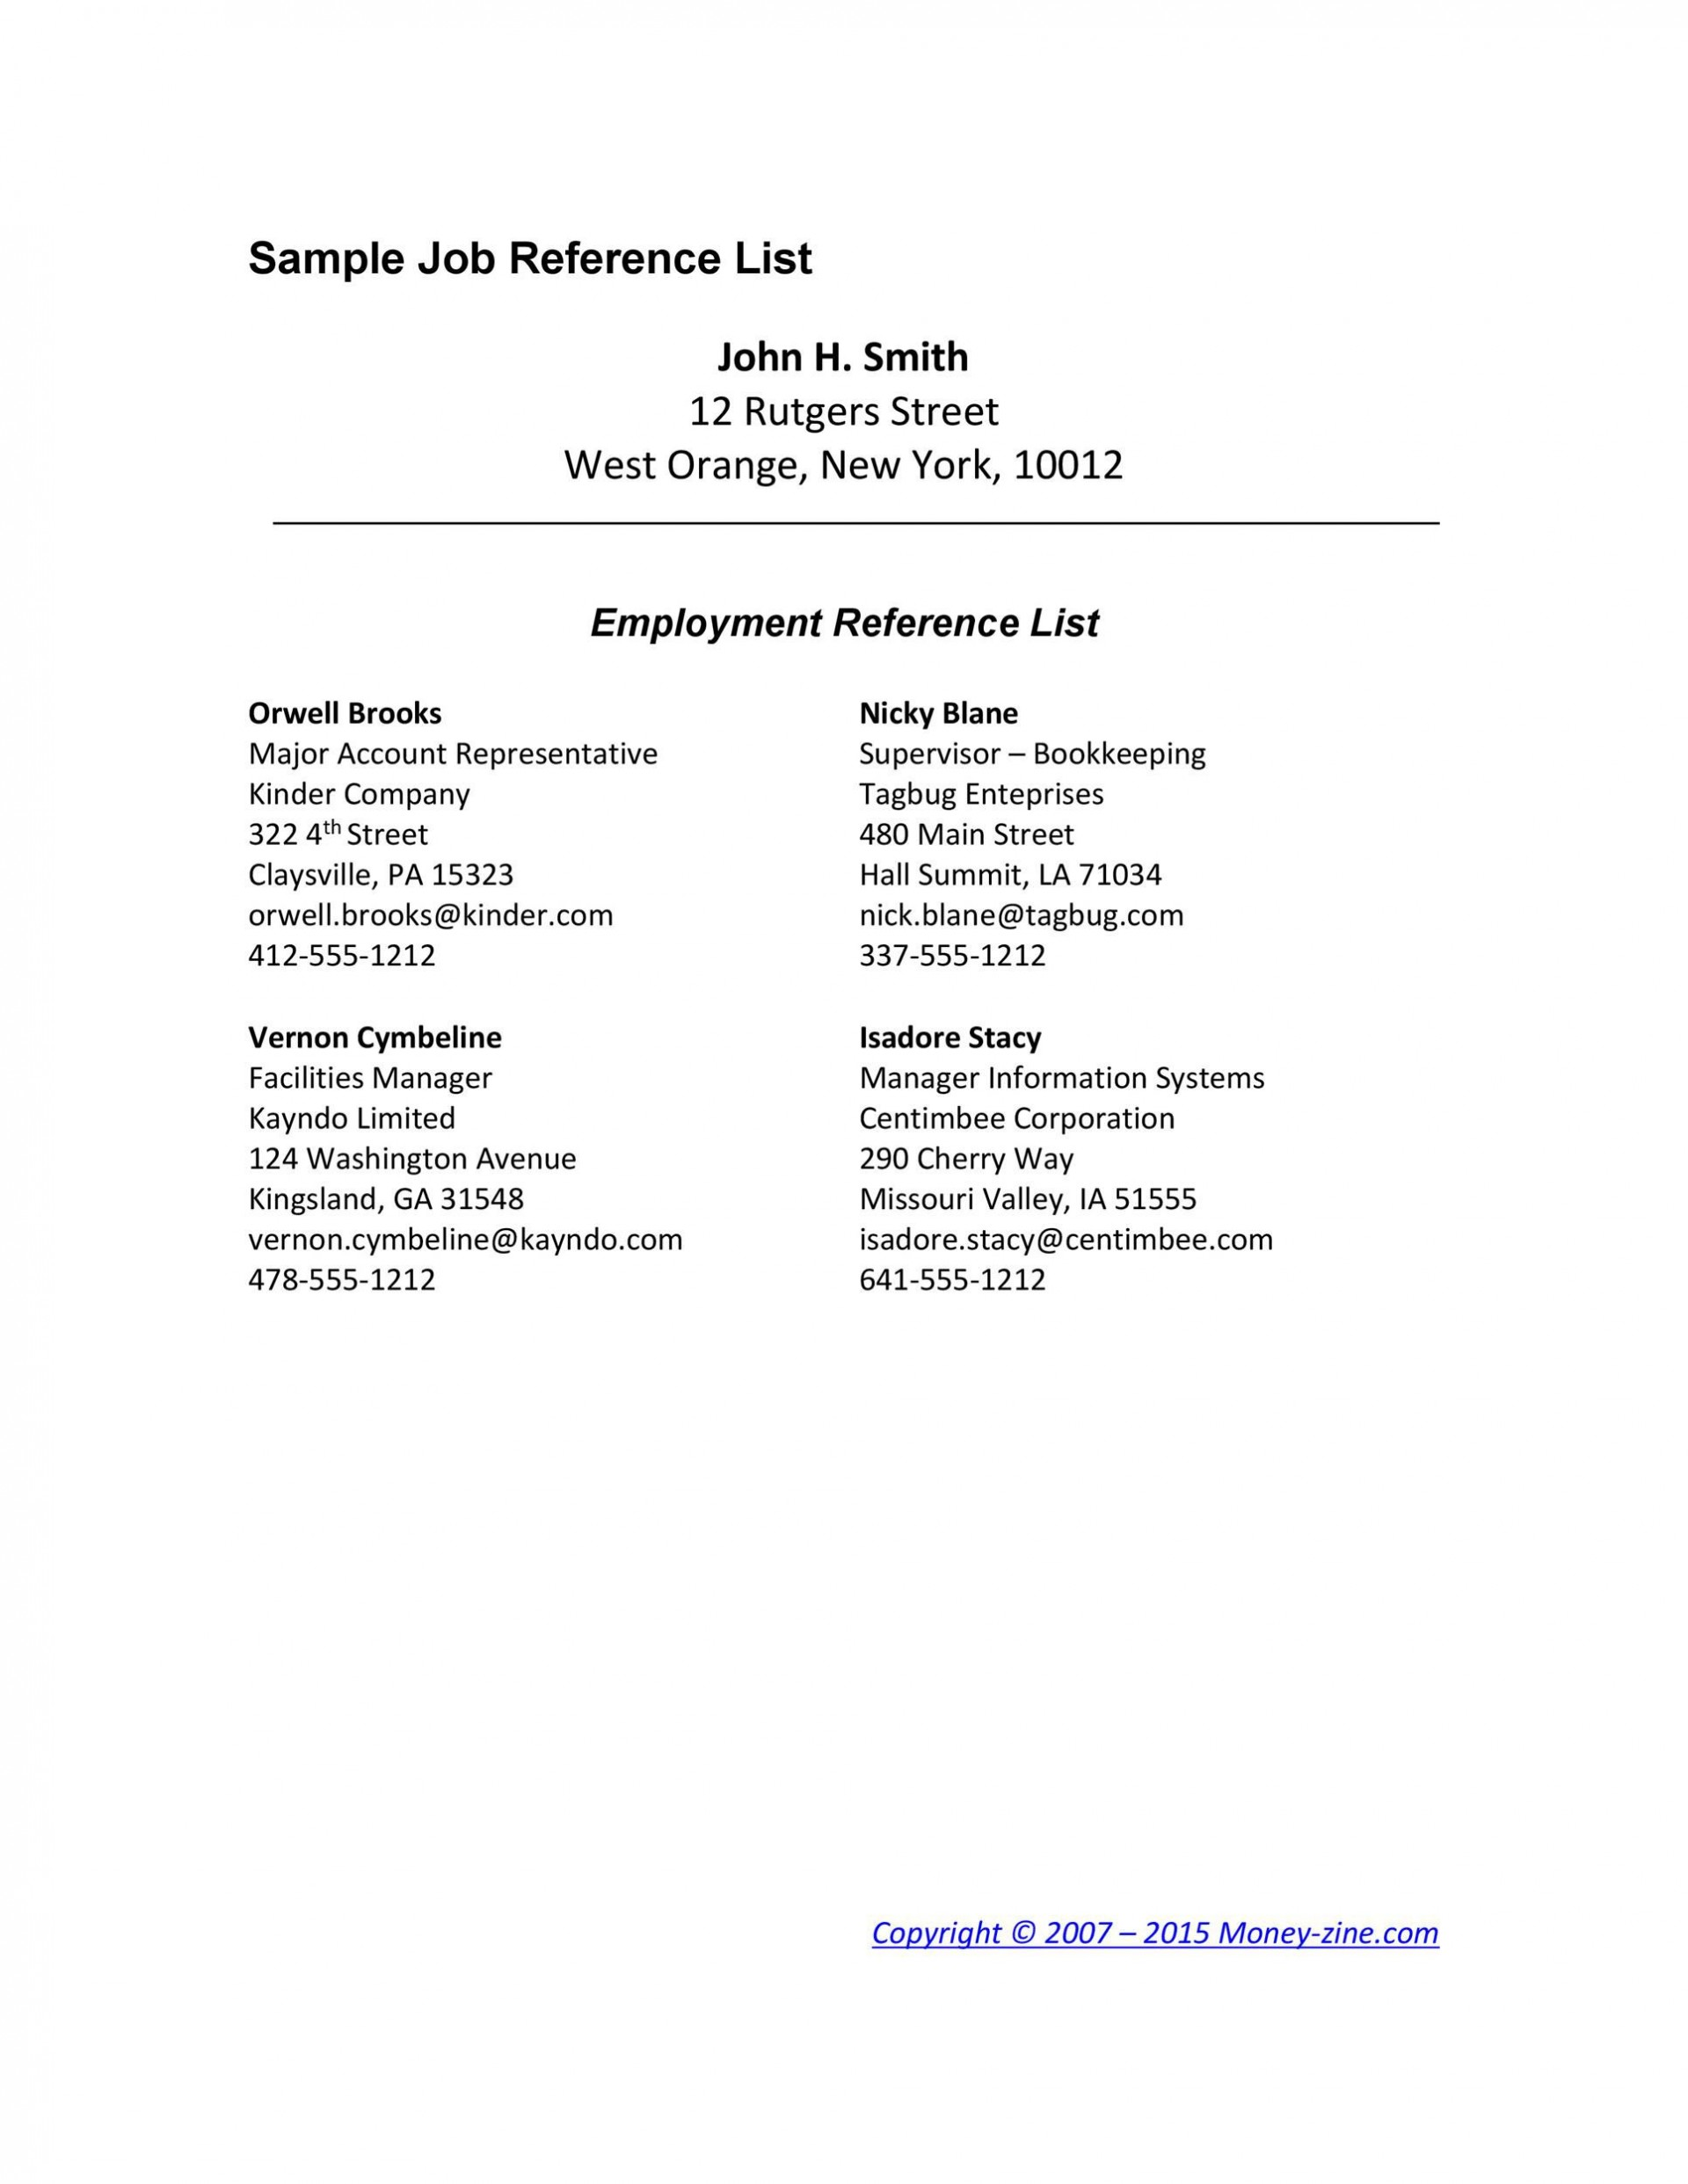 007 Unbelievable List Of Job Reference Sample Image  Format Employment Template1920